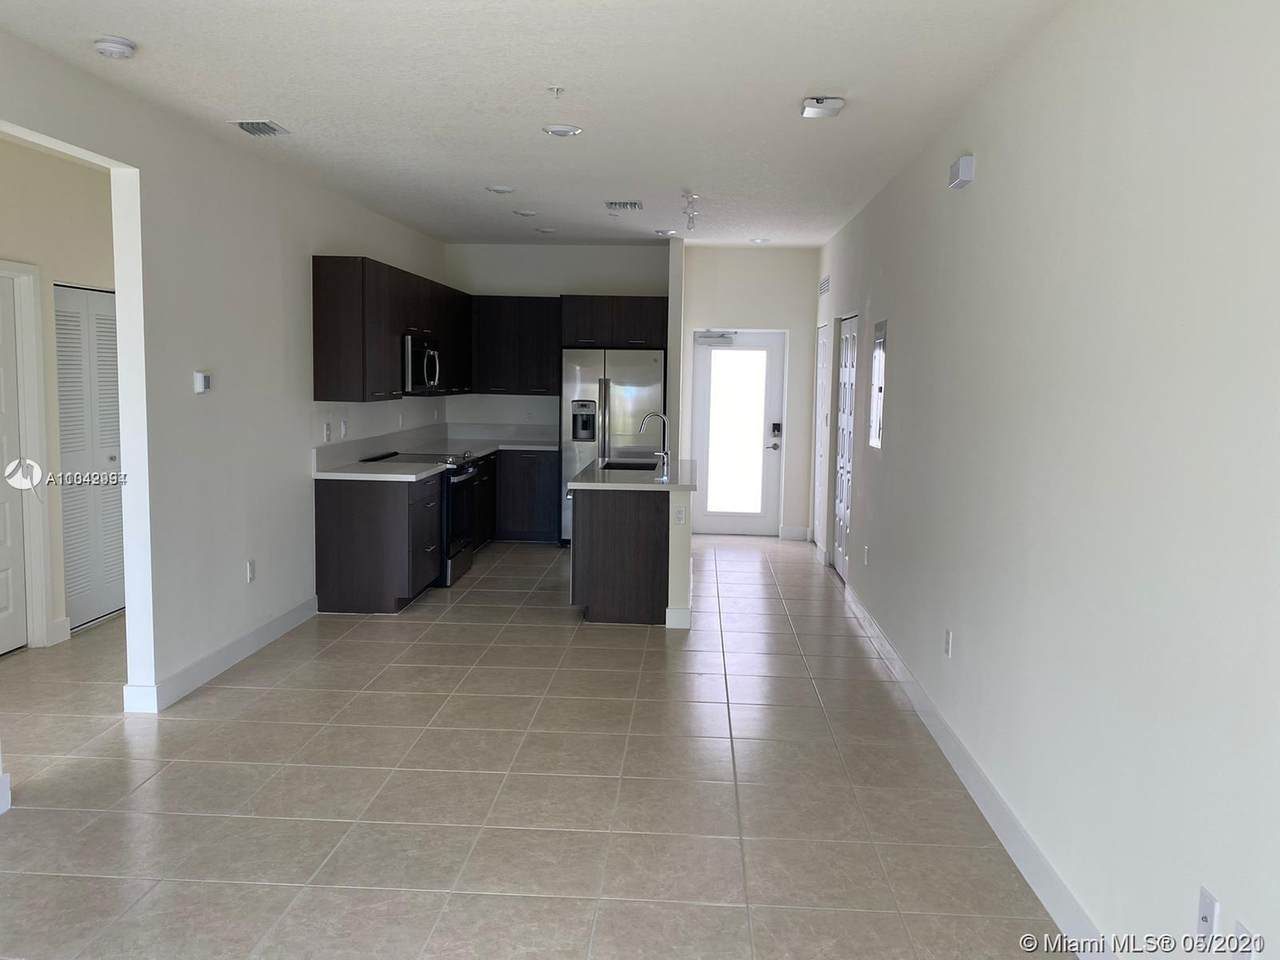 4640 NW 84th Ave 4640 Nw 84th Ave - Photo 1